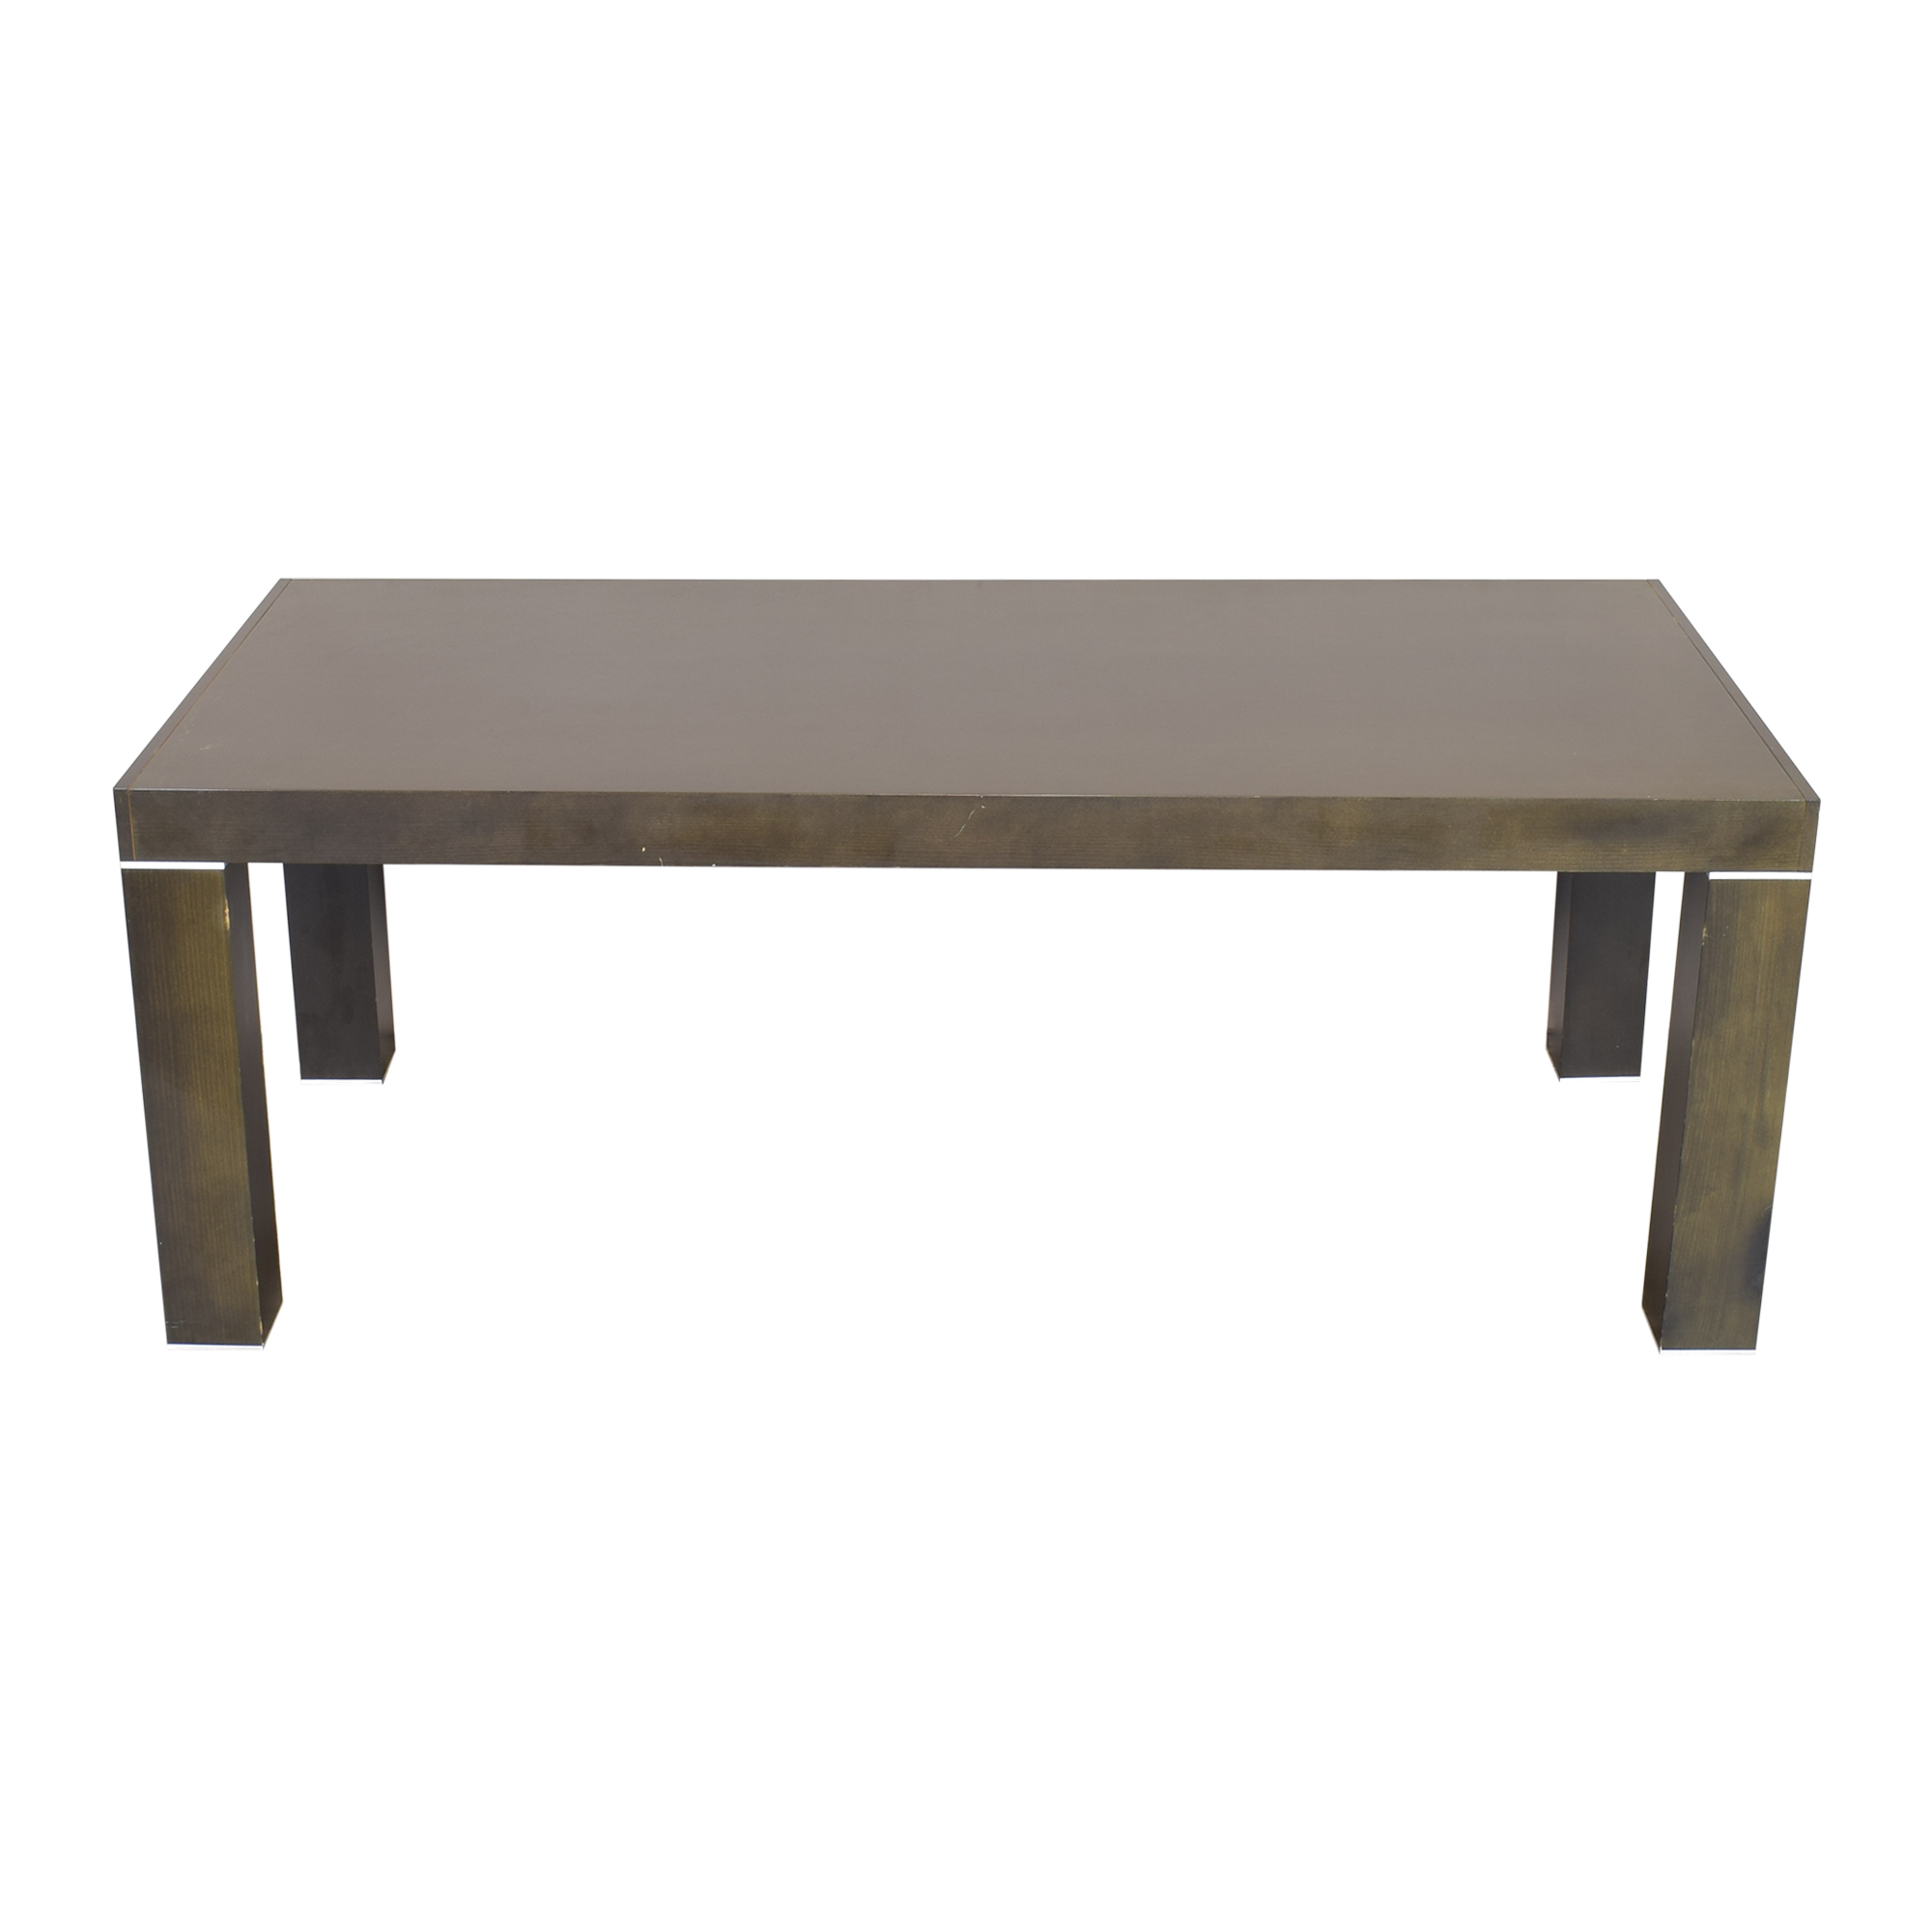 Roche Bobois Roche Bobois Rectangular Dining Table Tables